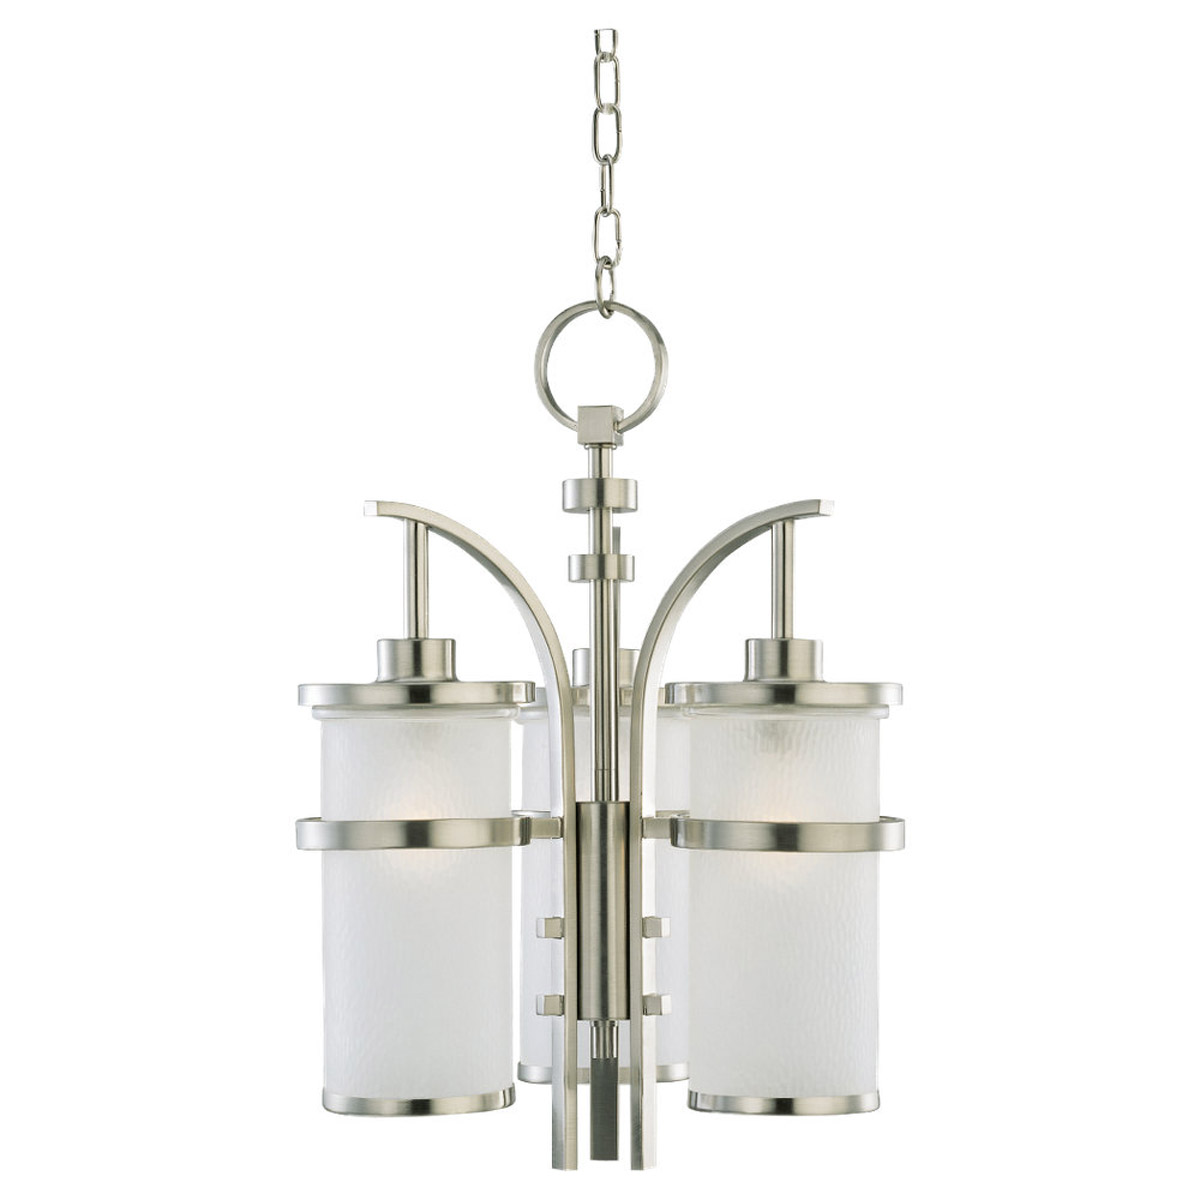 Sea Gull Lighting Eternity 3 Light Outdoor Pendant in Brushed Nickel 60115-962 photo